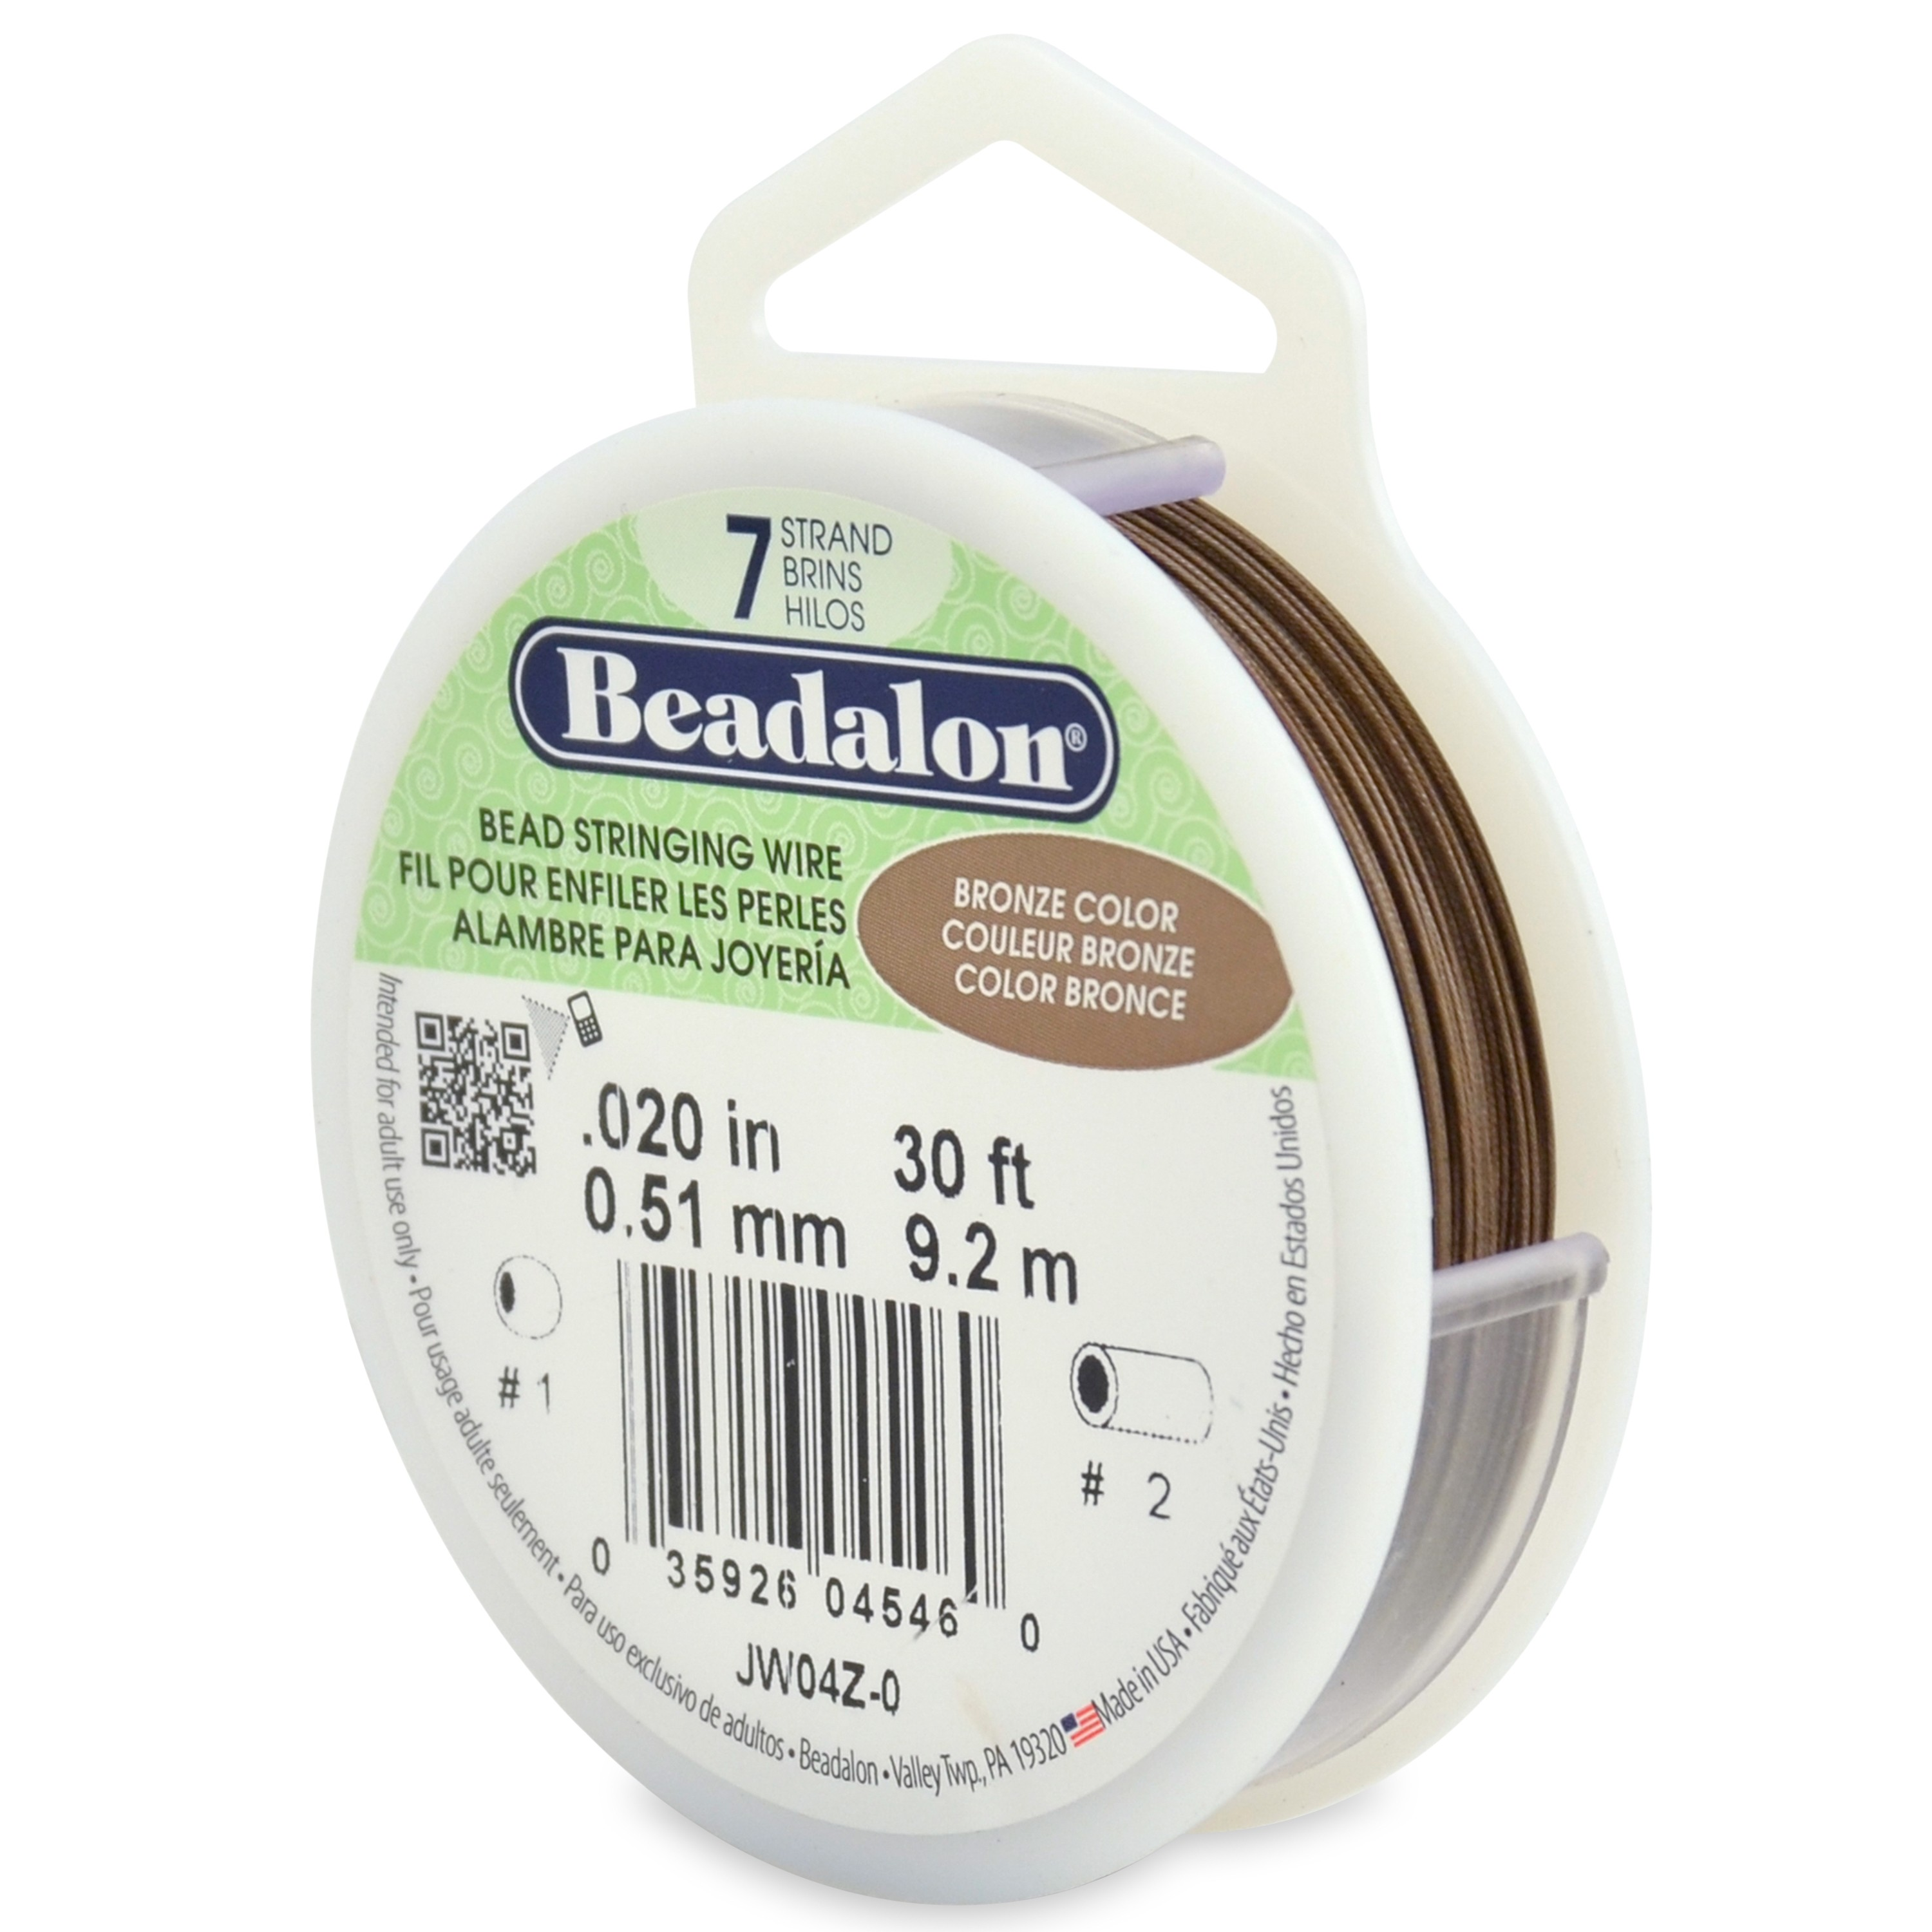 7 Strand Stainless Steel Bead Stringing Wire, .020 in (0.51 mm), Bronze, 30 ft (9.2 m)